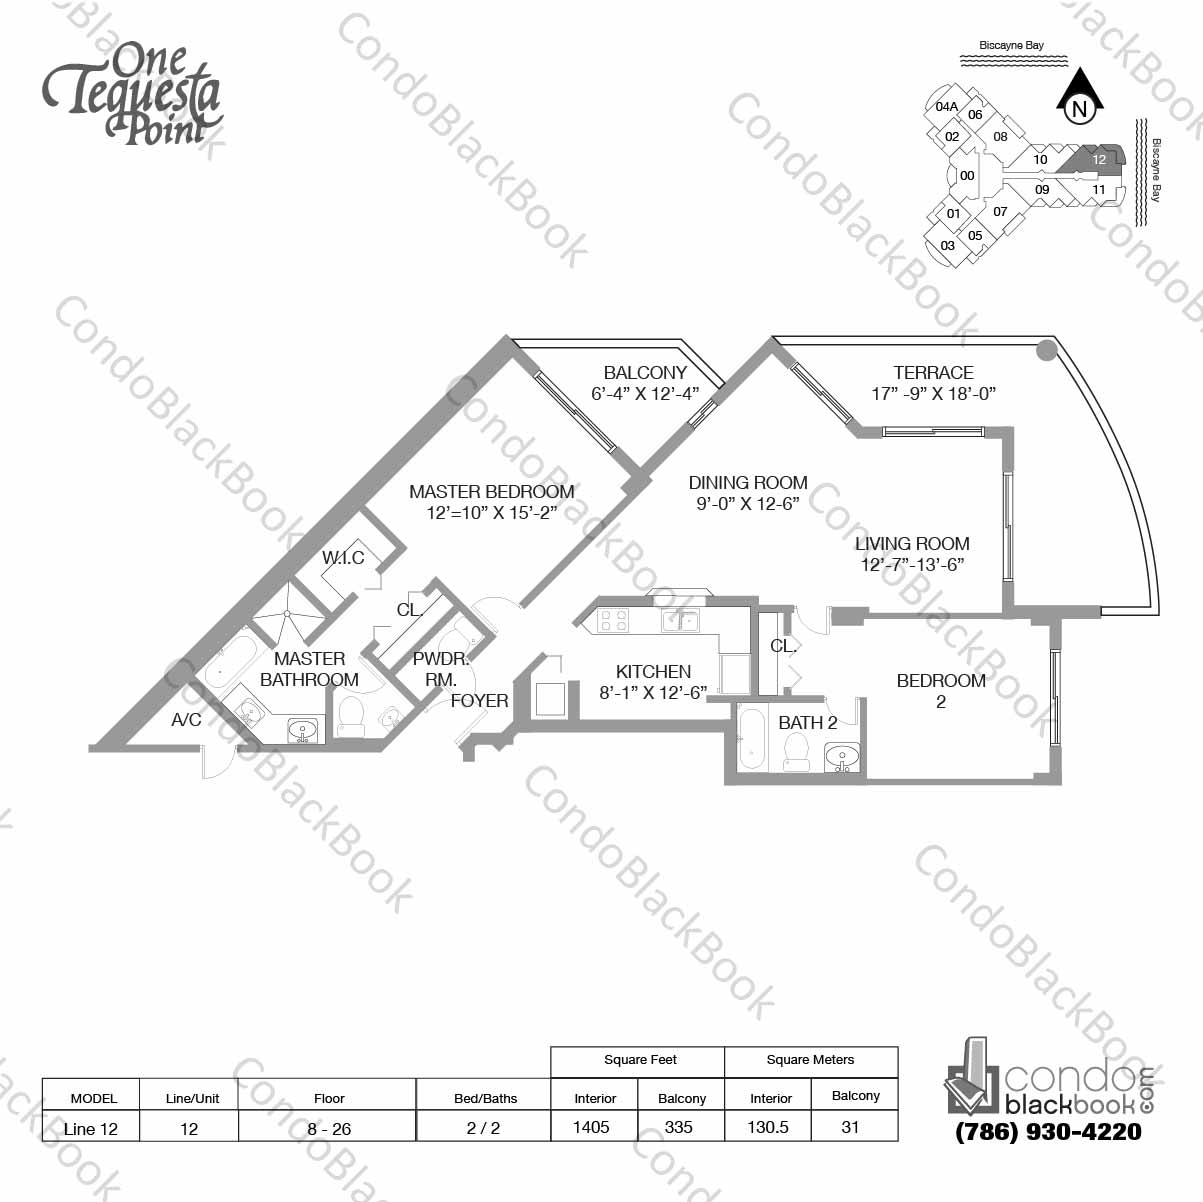 Floor plan for One Tequesta Point Brickell Key Miami, model Line 12, line 12,  2 / 2.5 bedrooms, 1405 sq ft